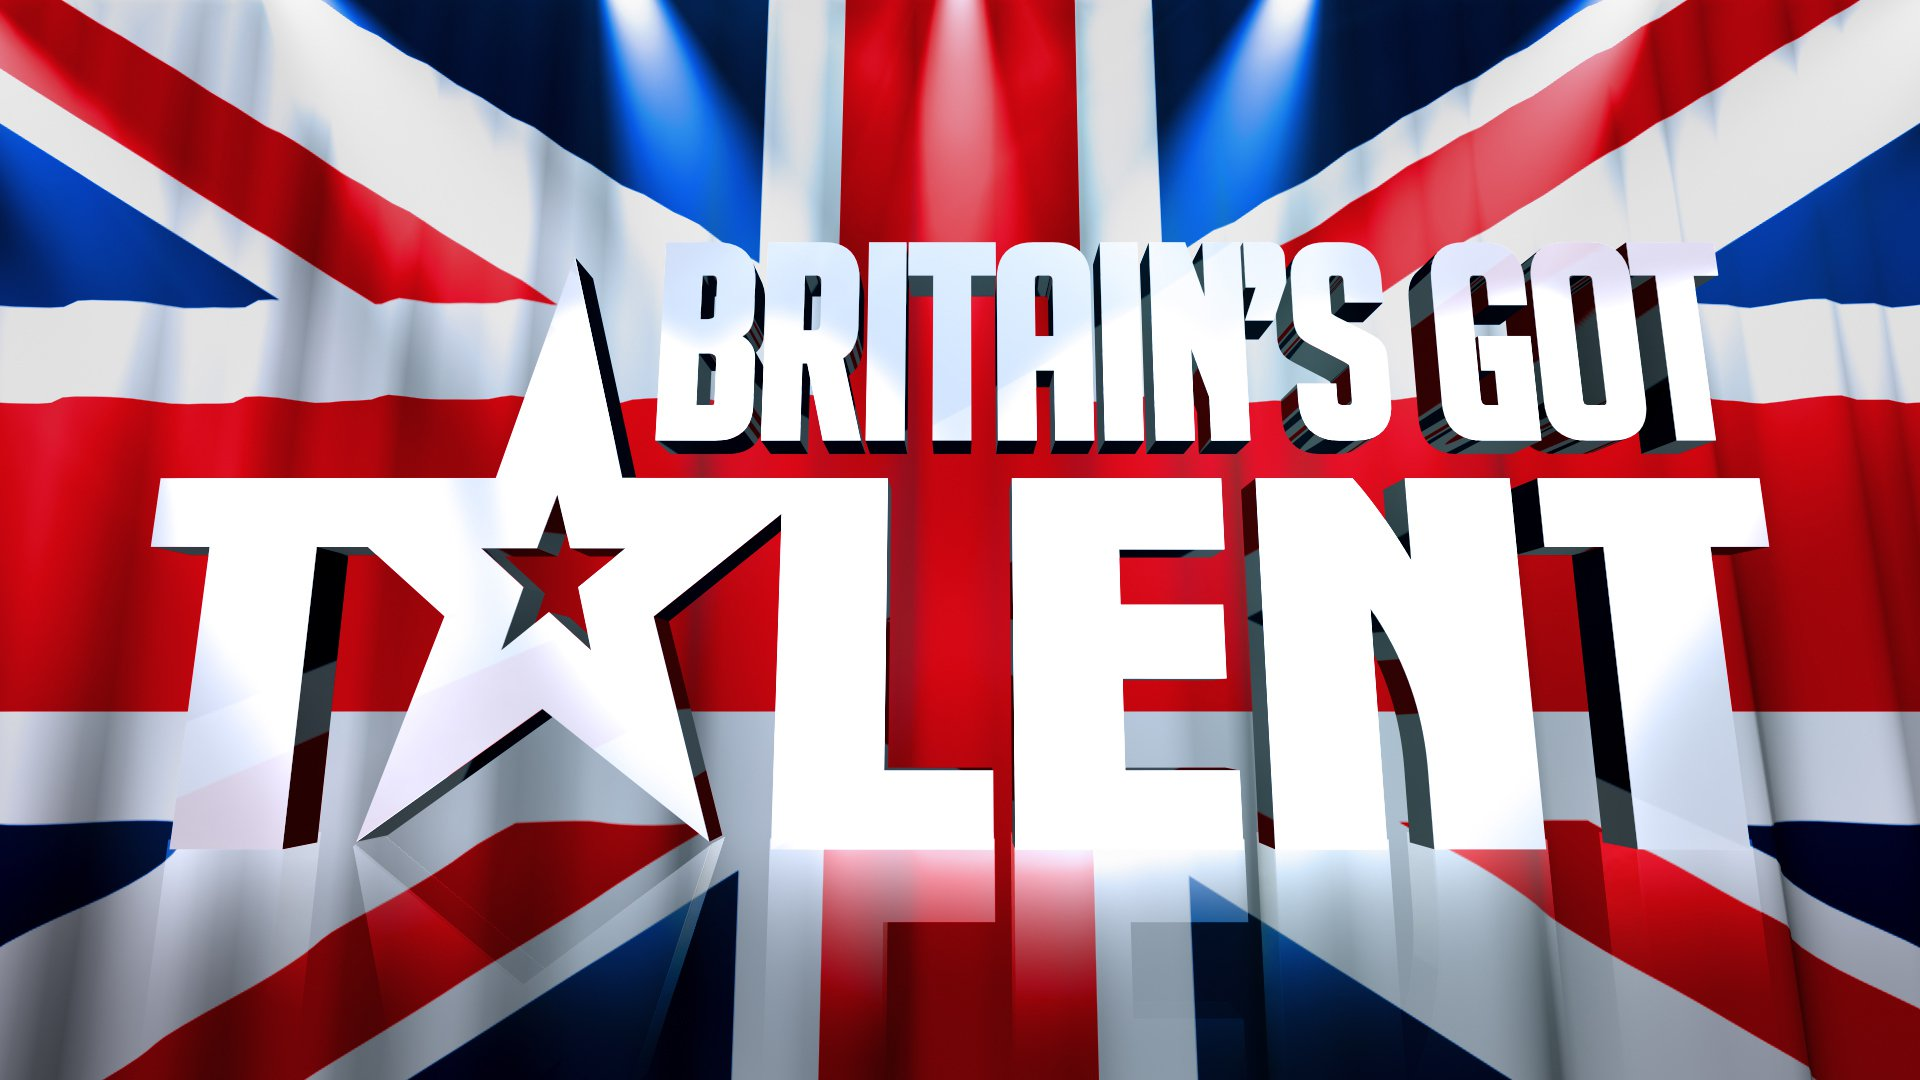 What time is Britain's Got Talent on tonight?